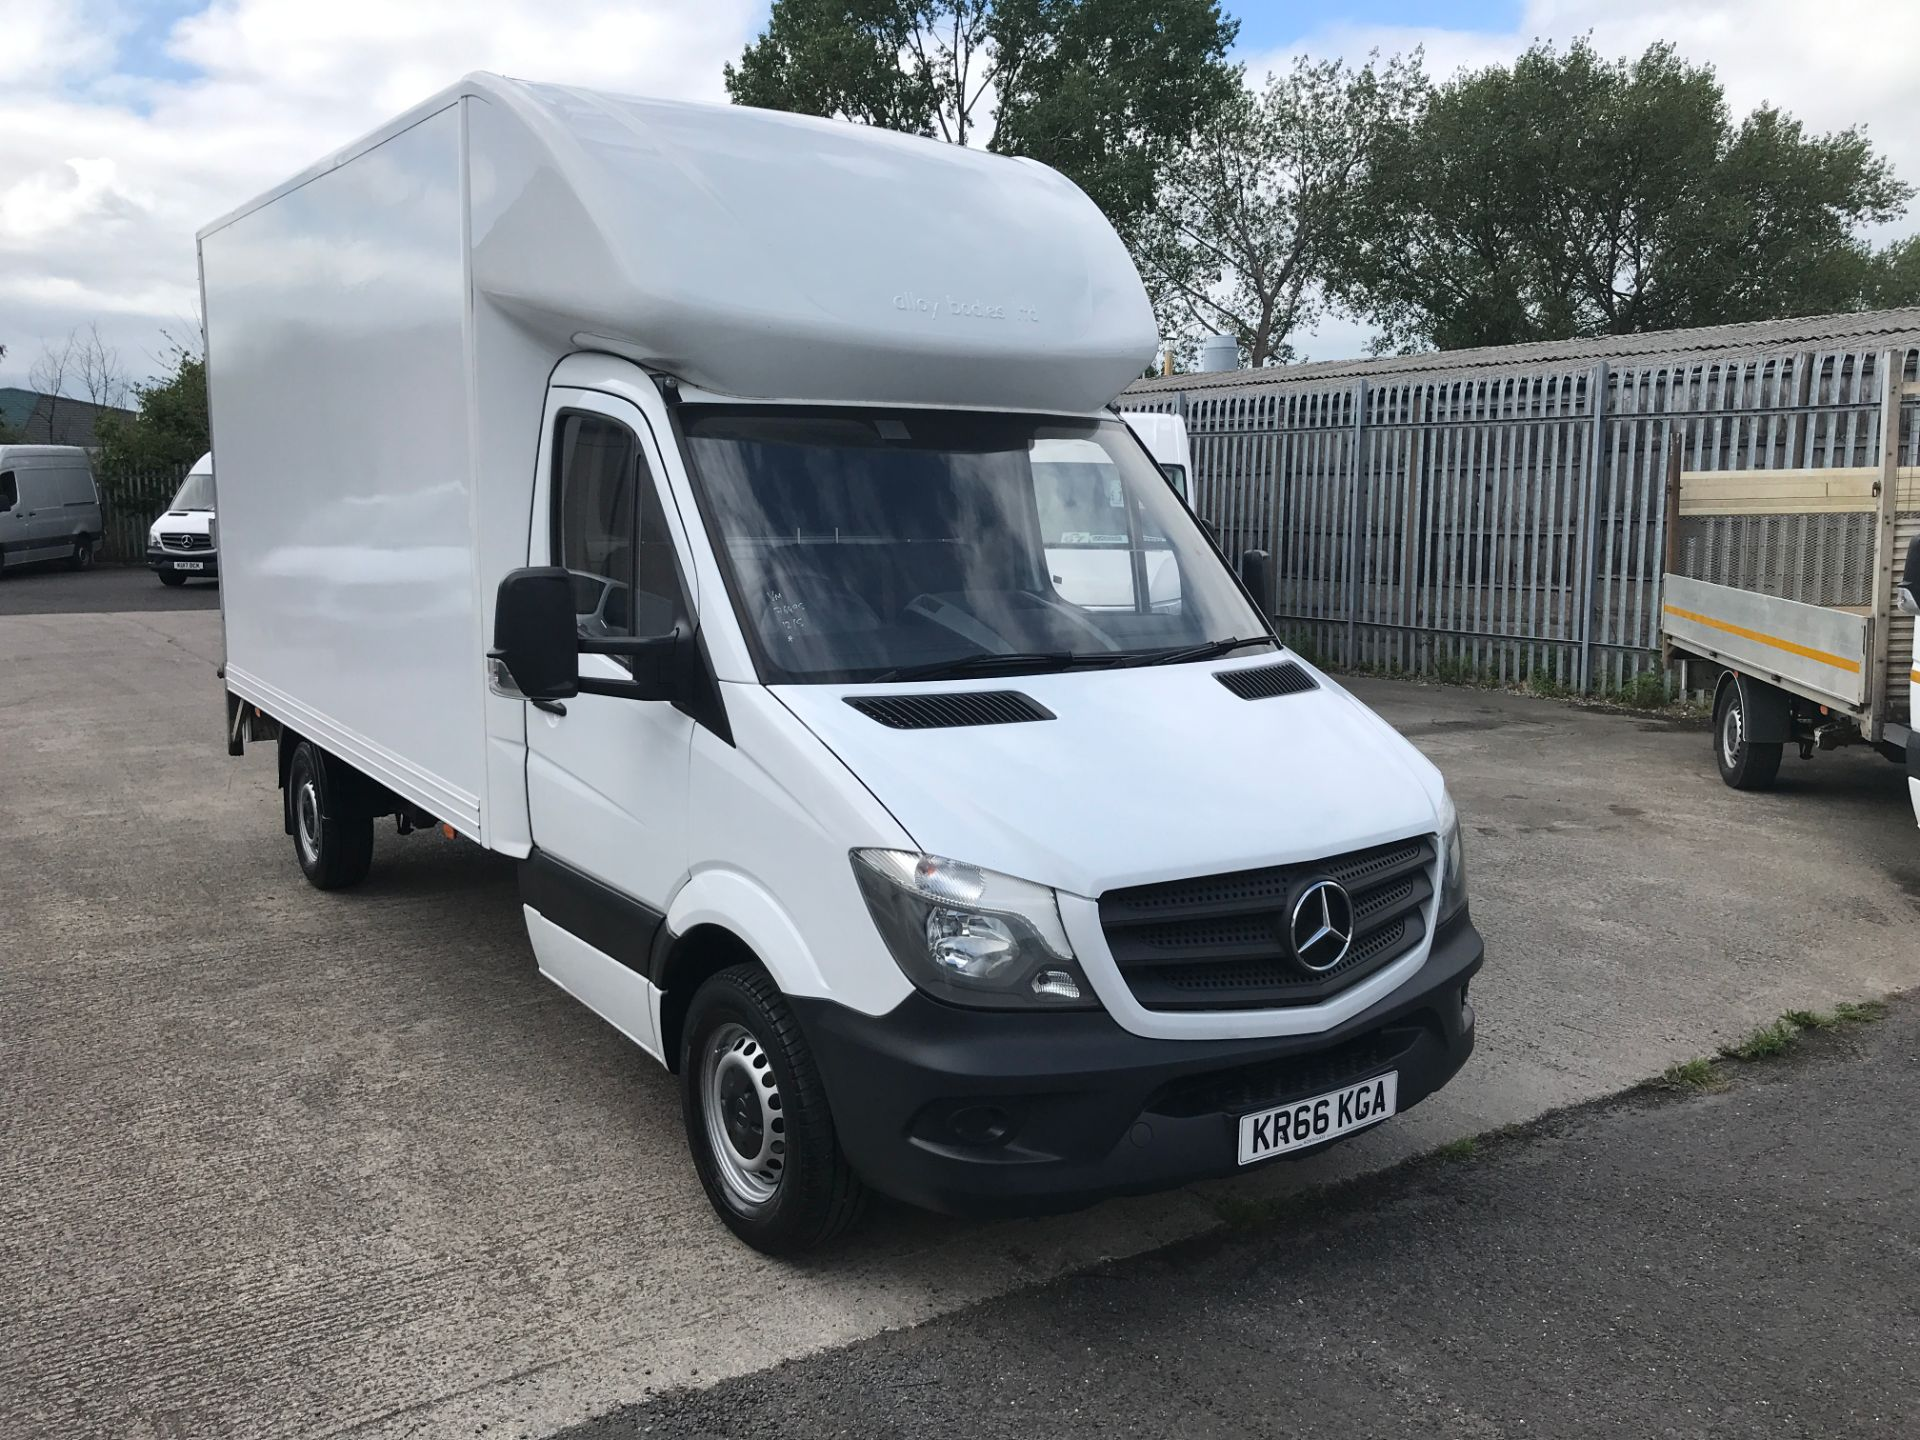 2016 Mercedes-Benz Sprinter 314CDI 13FT LUTON 140PS EURO 6 TAIL LIFT (KR66KGA)